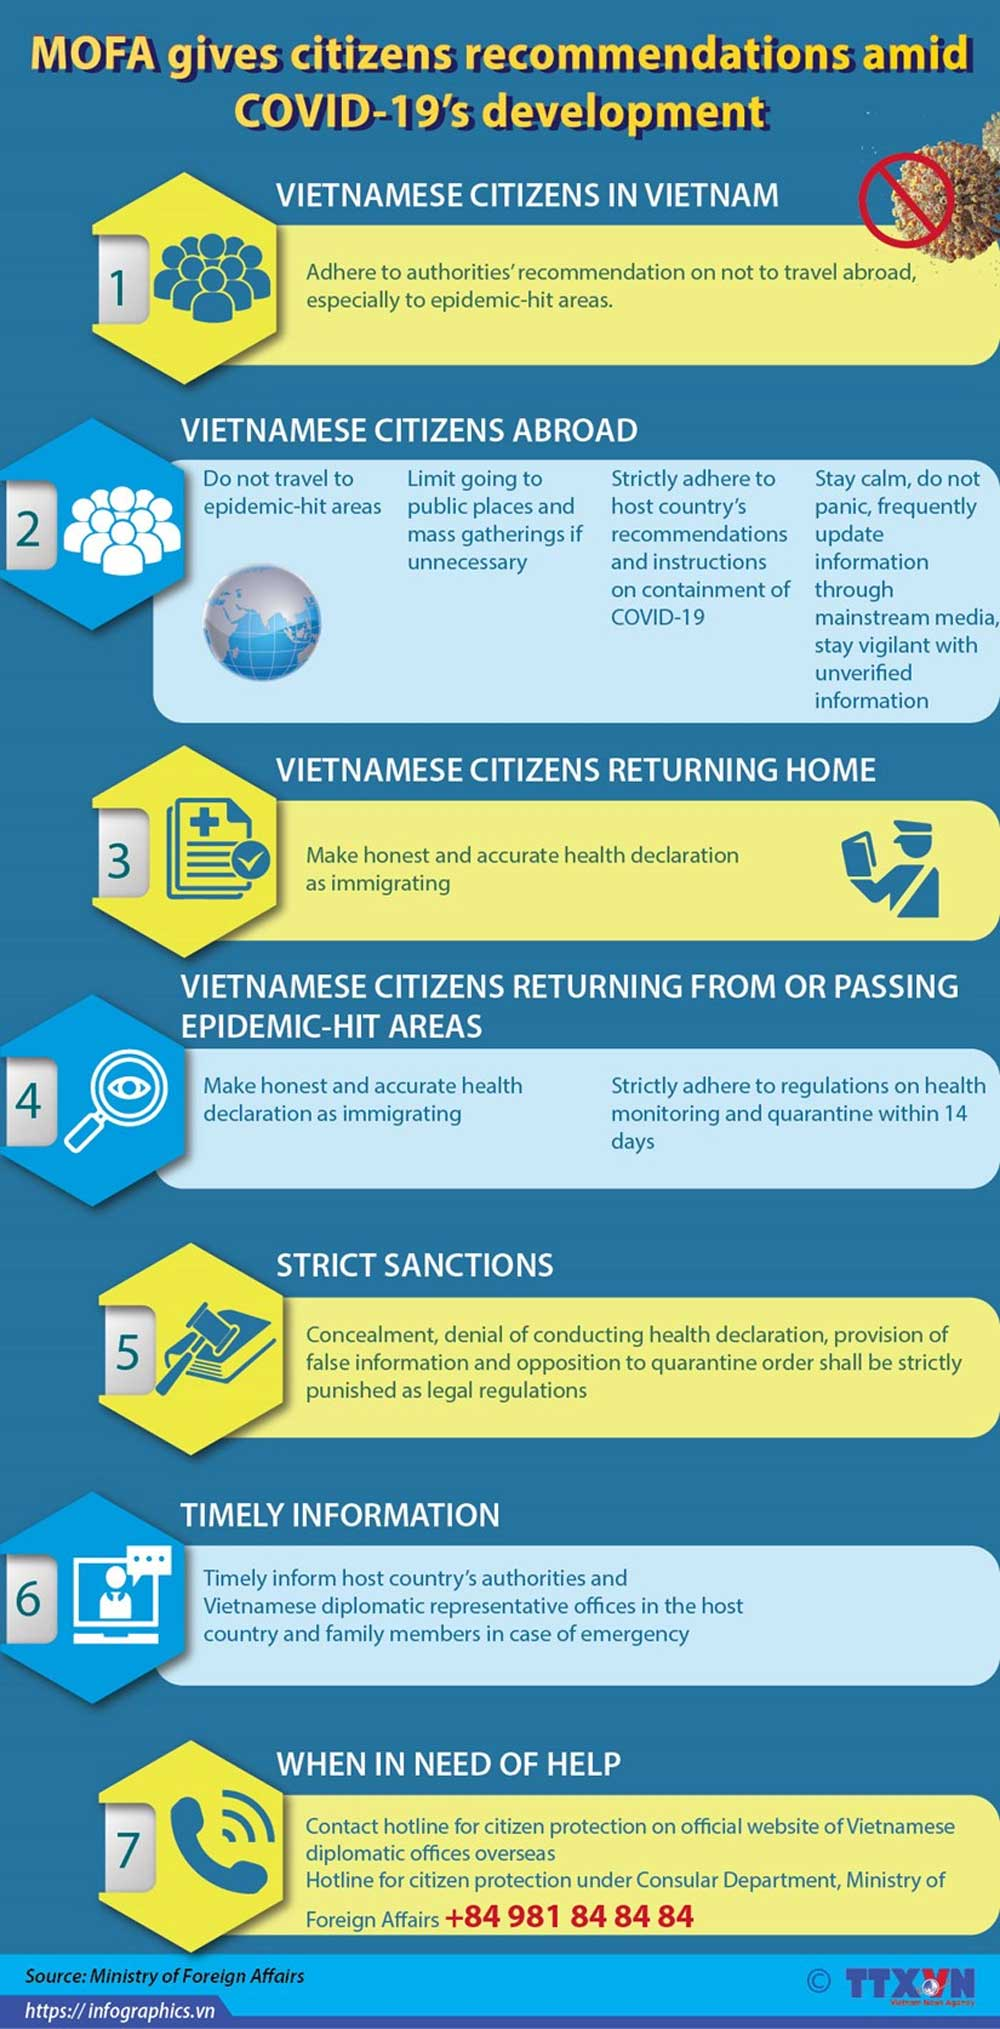 MOFA, COVID-19's development, Vietnamese citizens, authorities' recommendation,  travel abroad, epidemic-hit areas